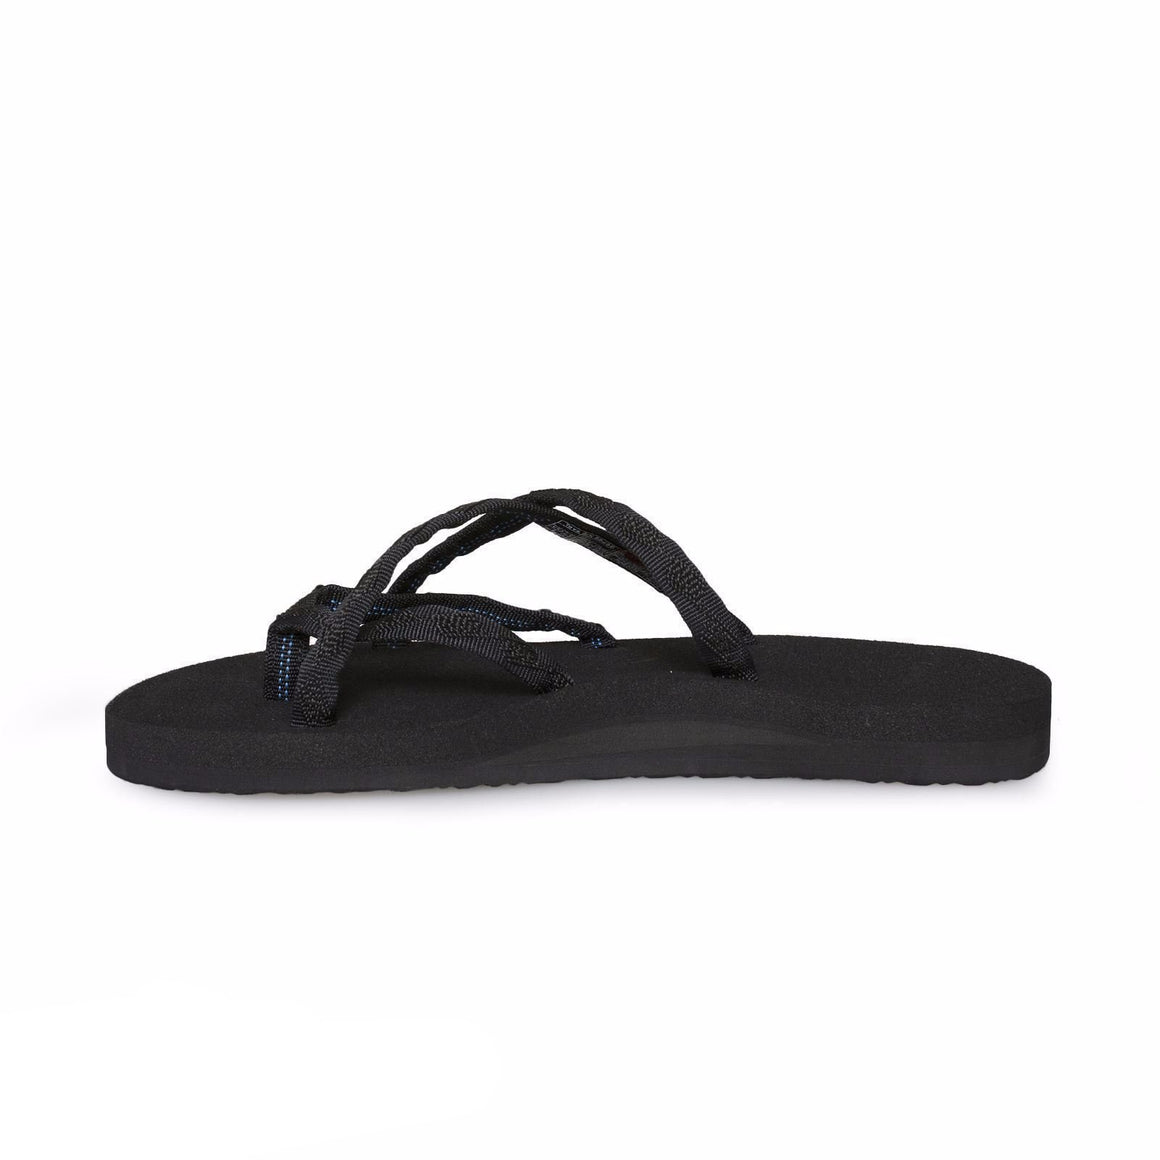 Teva Olowahu Mix B Black on Black Sandals